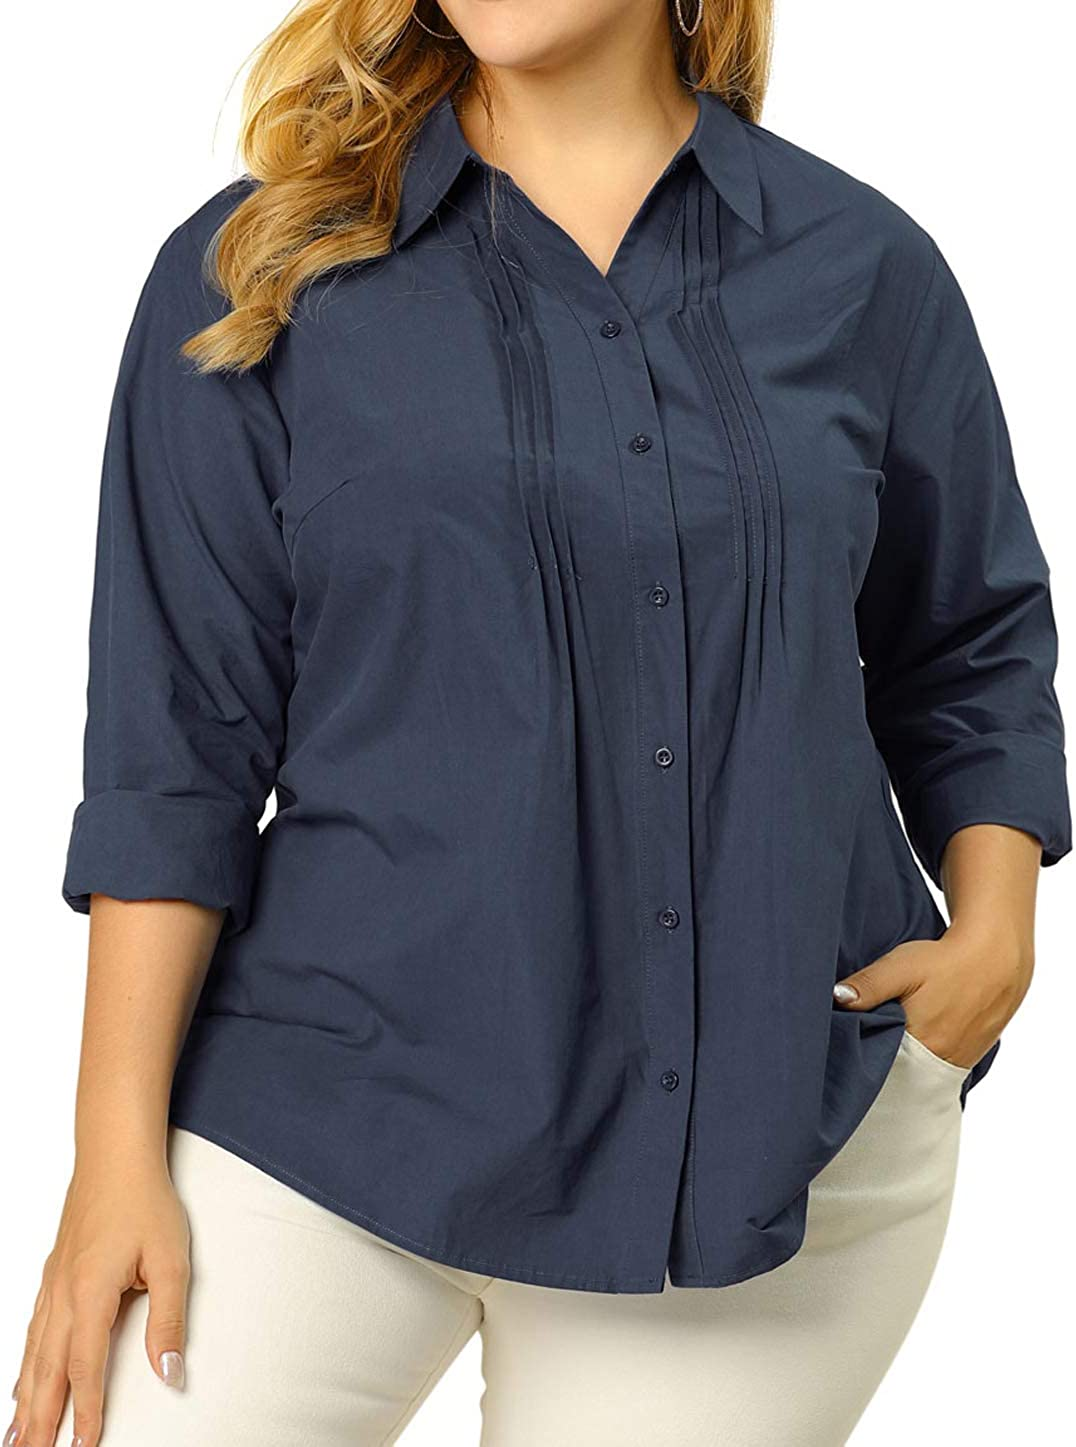 Agnes Orinda Women's Plus Size Shirt Top Stand Collar Front Pleated Work Button Down Shirt Tops Mothers Day